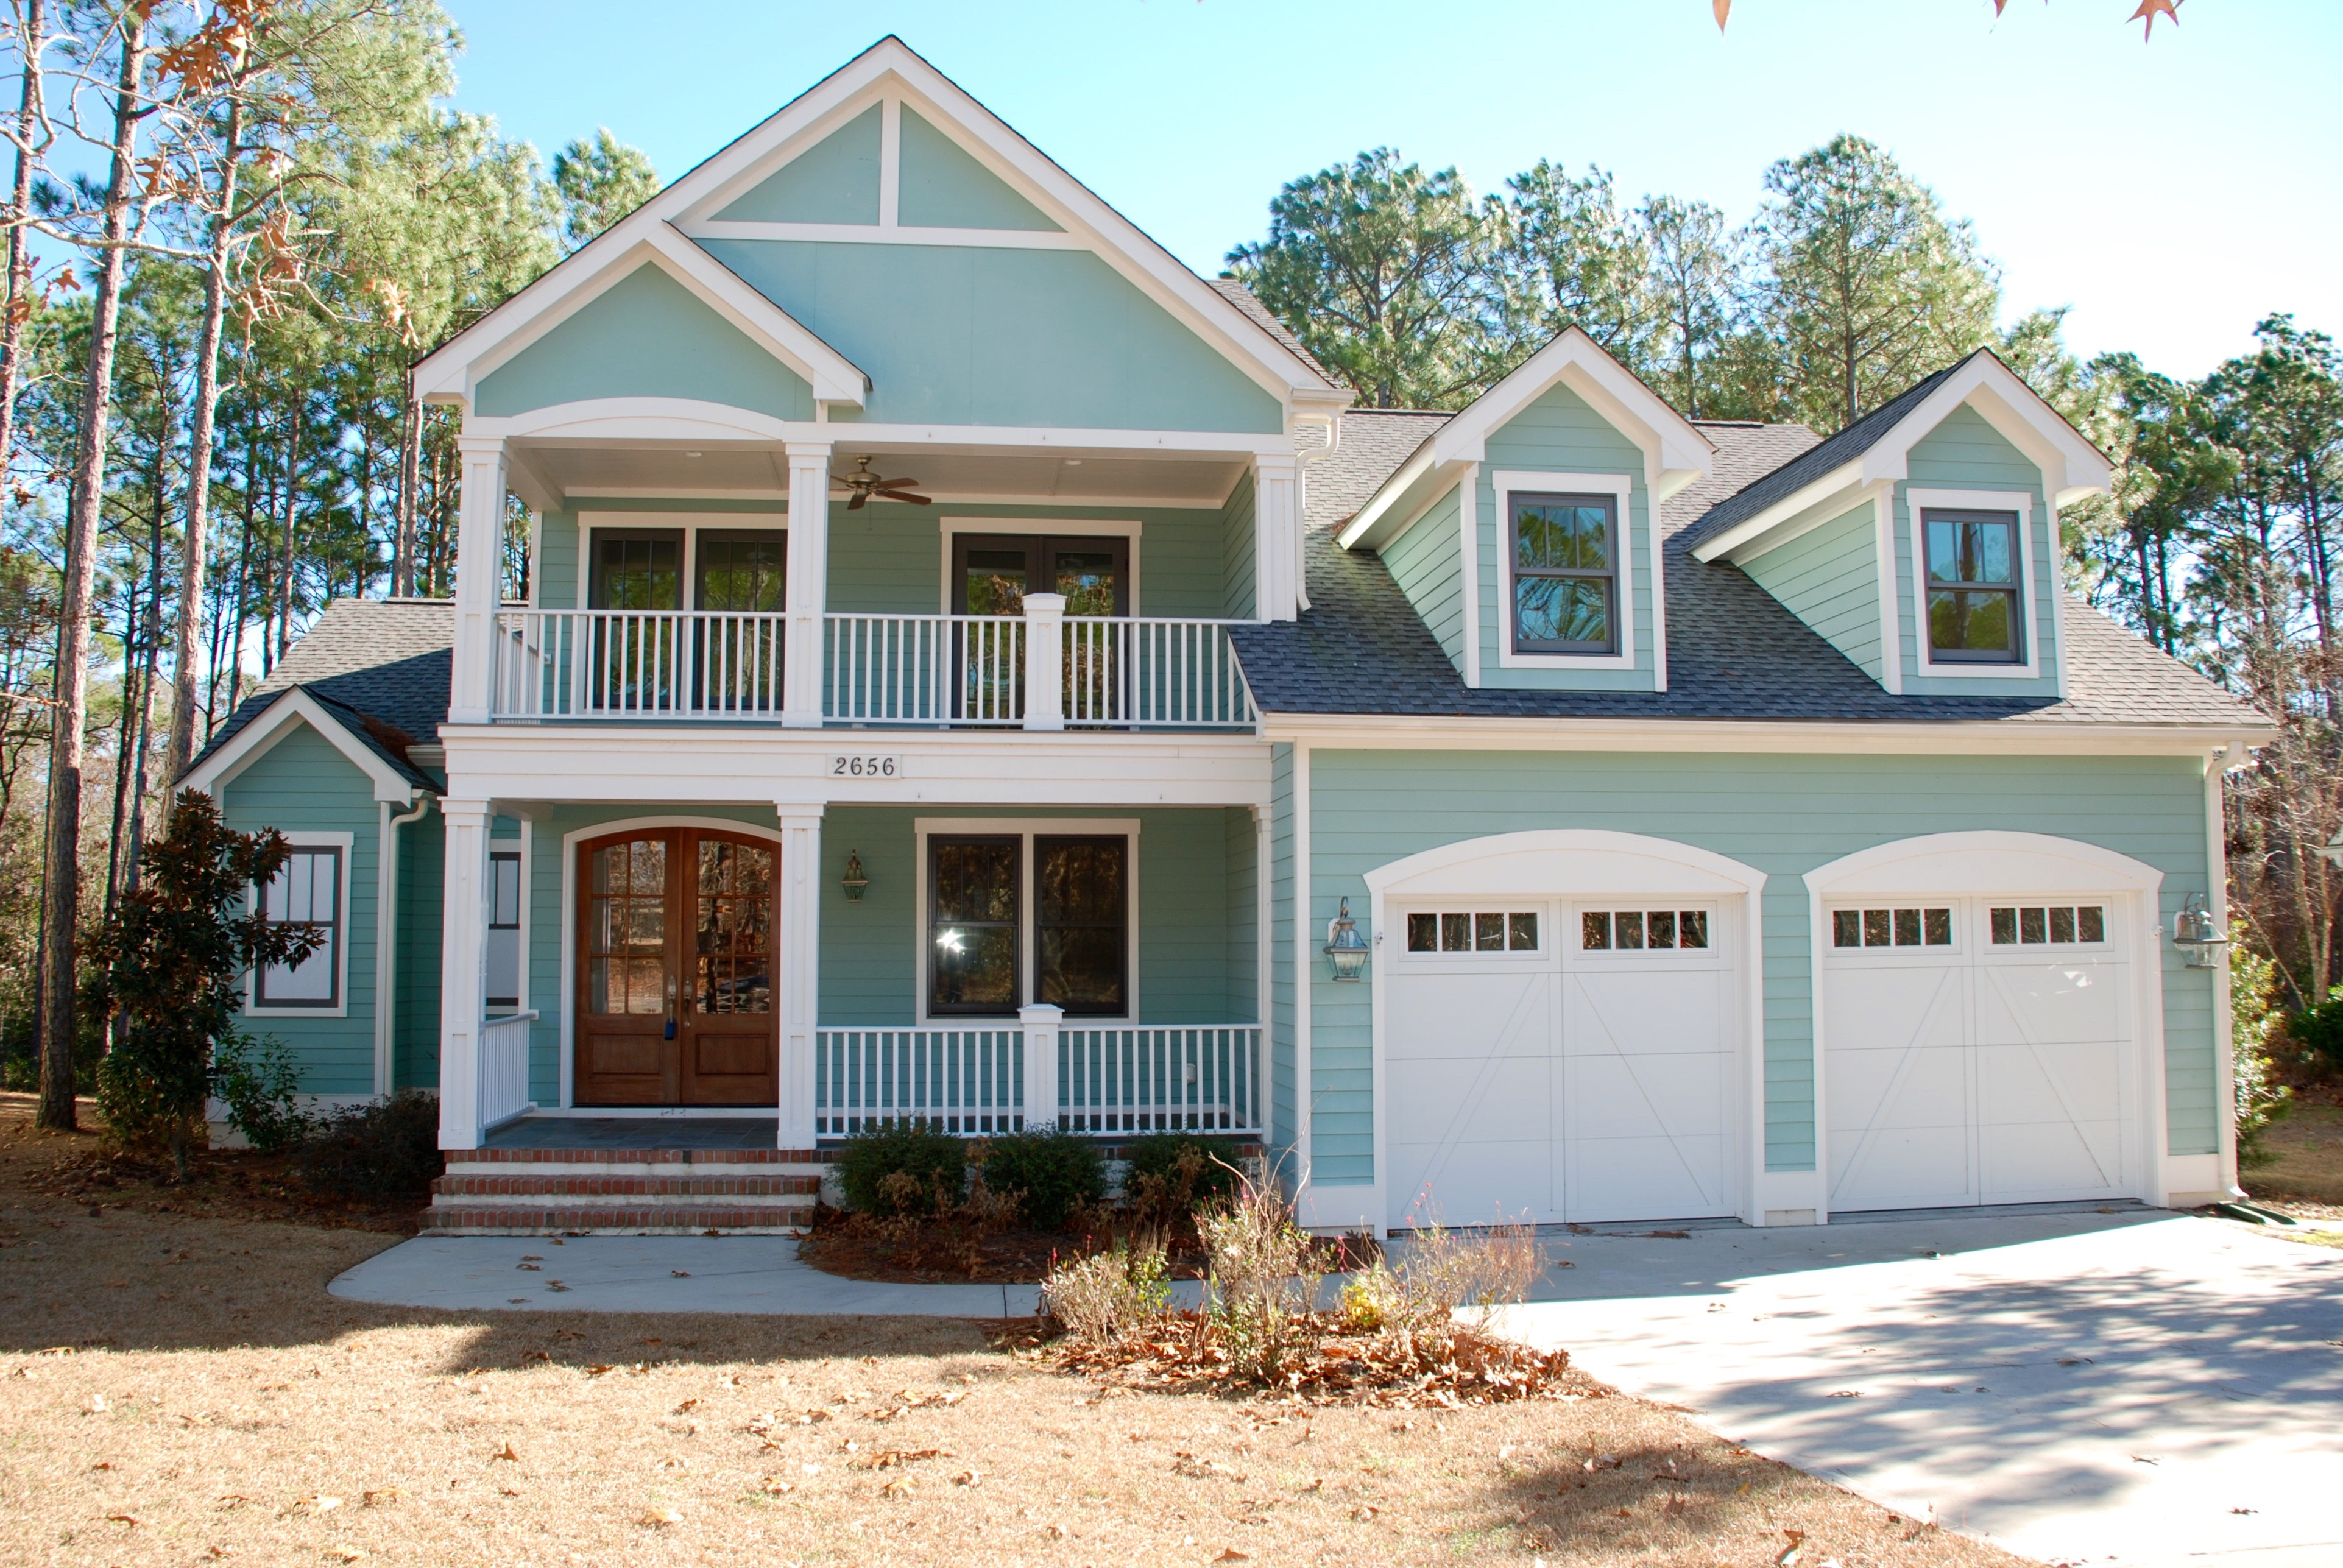 Single Family Home for Sale at Custom home with numerous upgrades & designer finishes 2656 Park Ridge Drive Southport, North Carolina 28461 United States